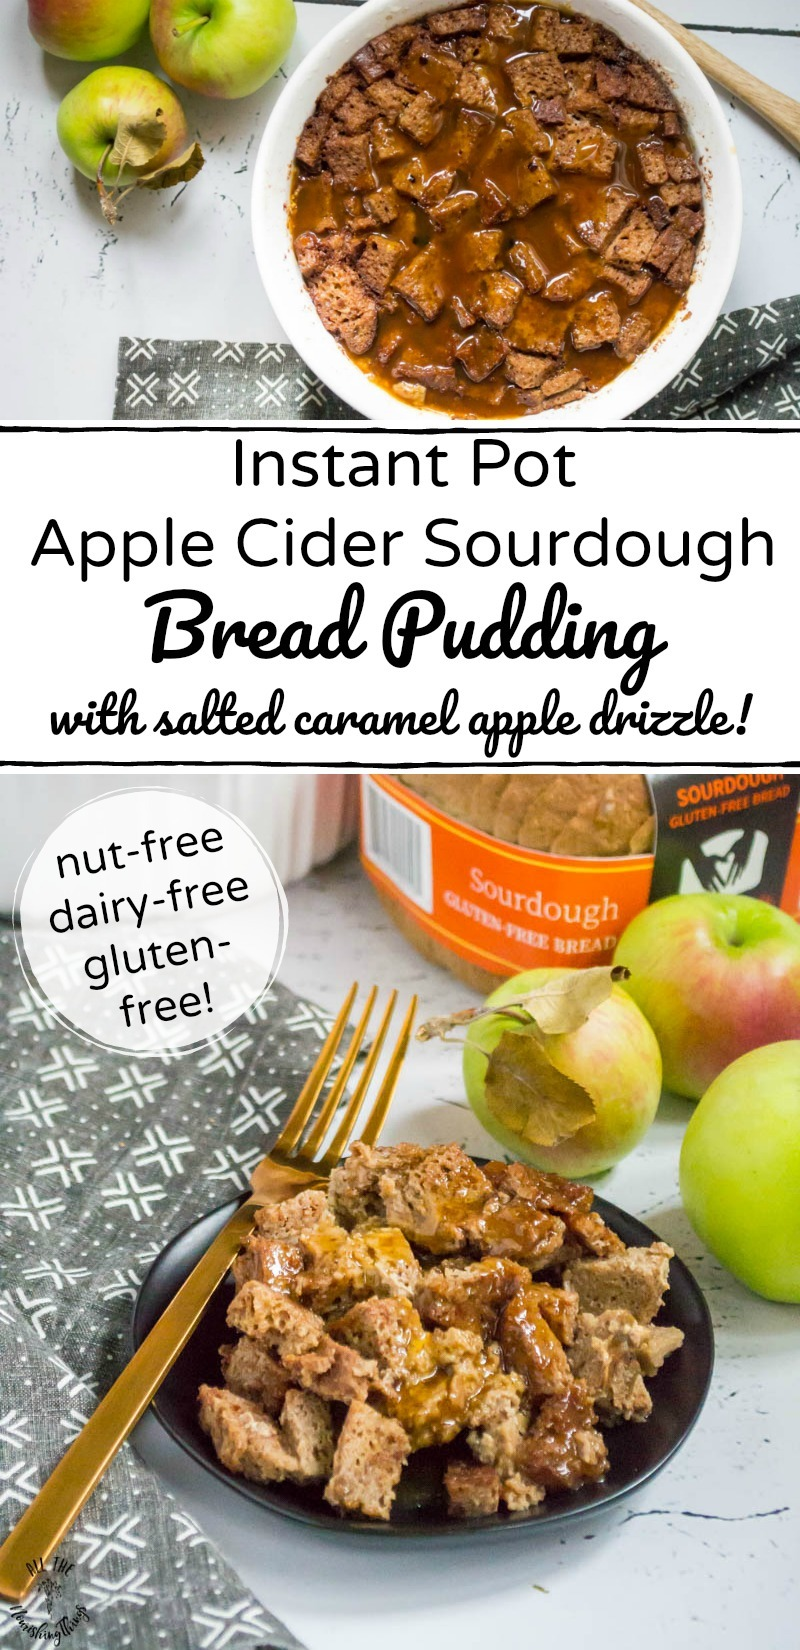 2 images of instant pot apple cider sourdough bread pudding with text between the images